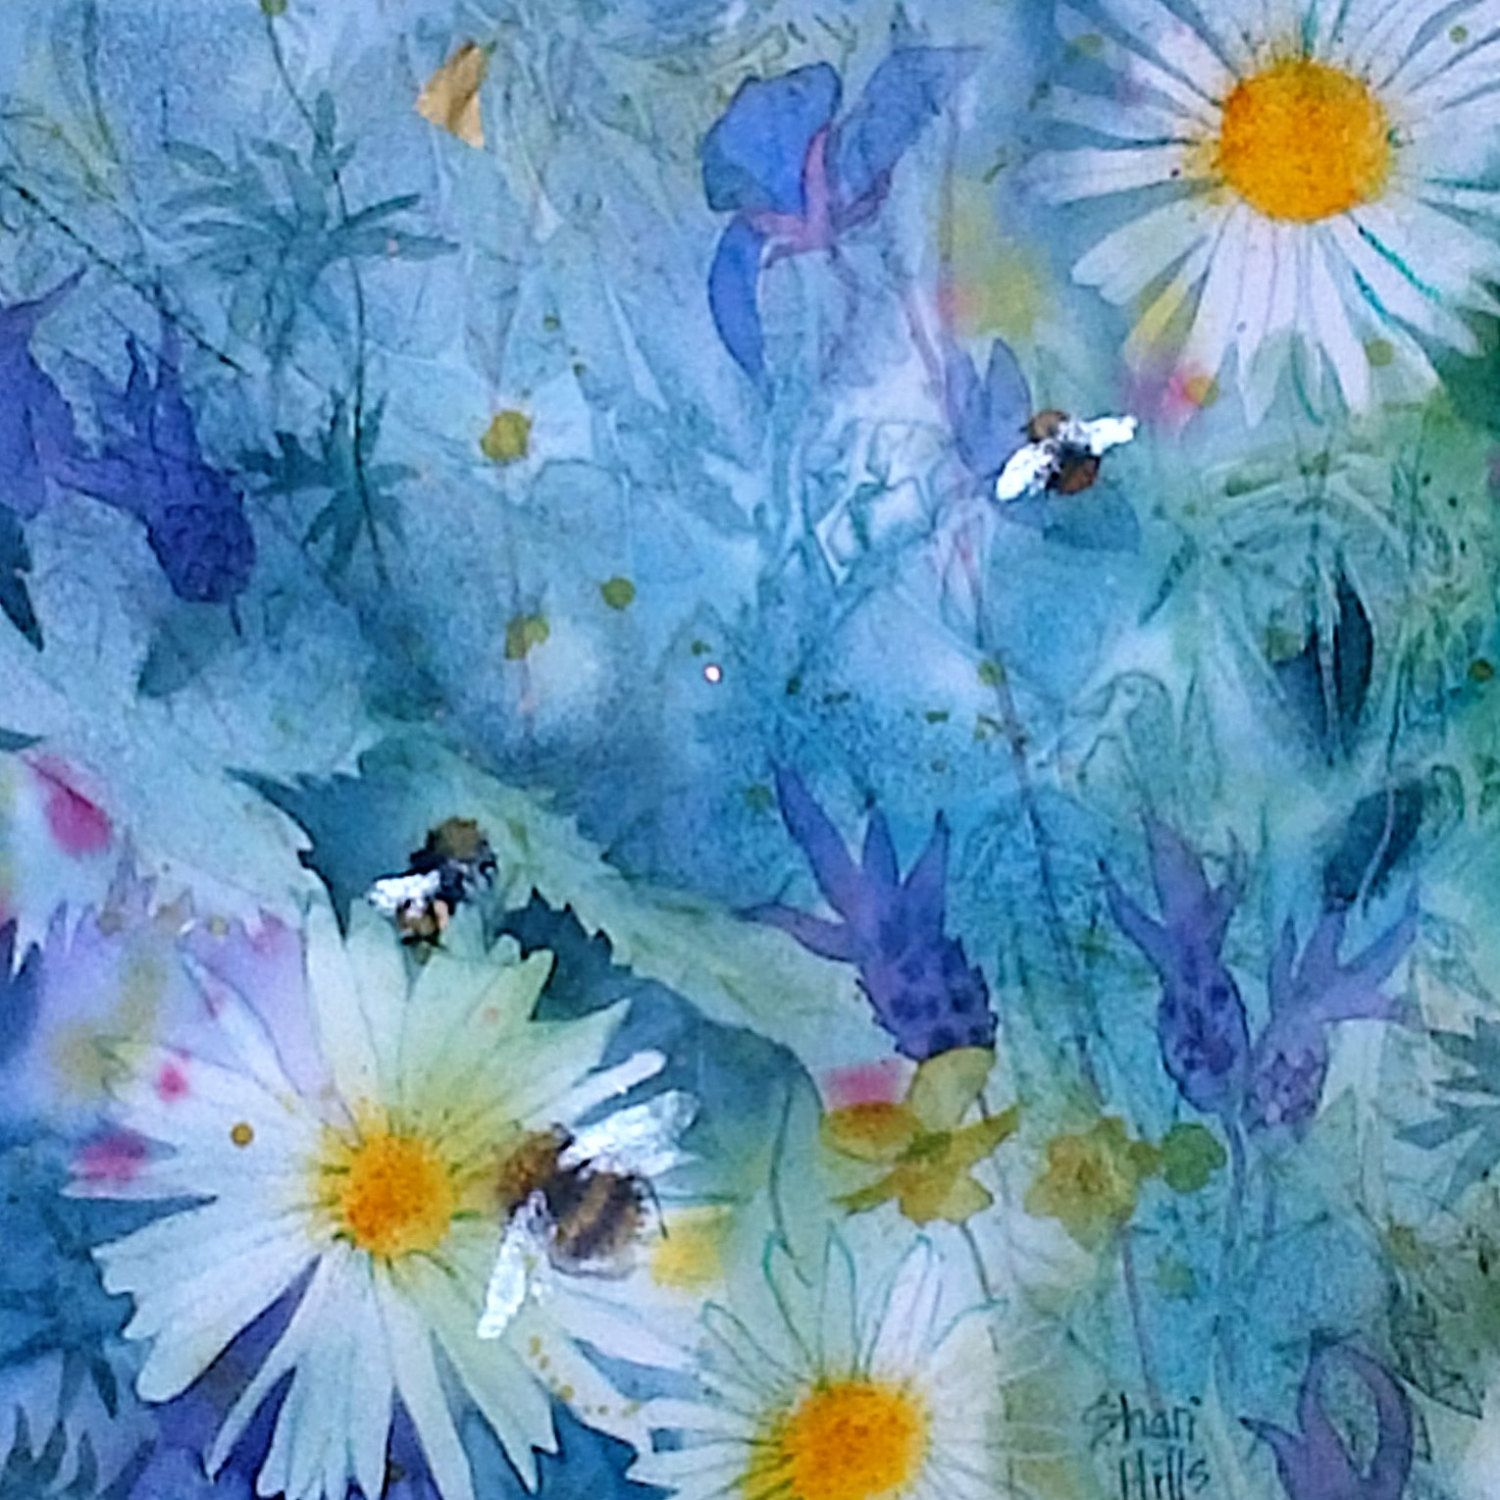 English country garden paintings - Original Watercolour Painting By Shari Hills Flowers And Bees In An English Country Garden